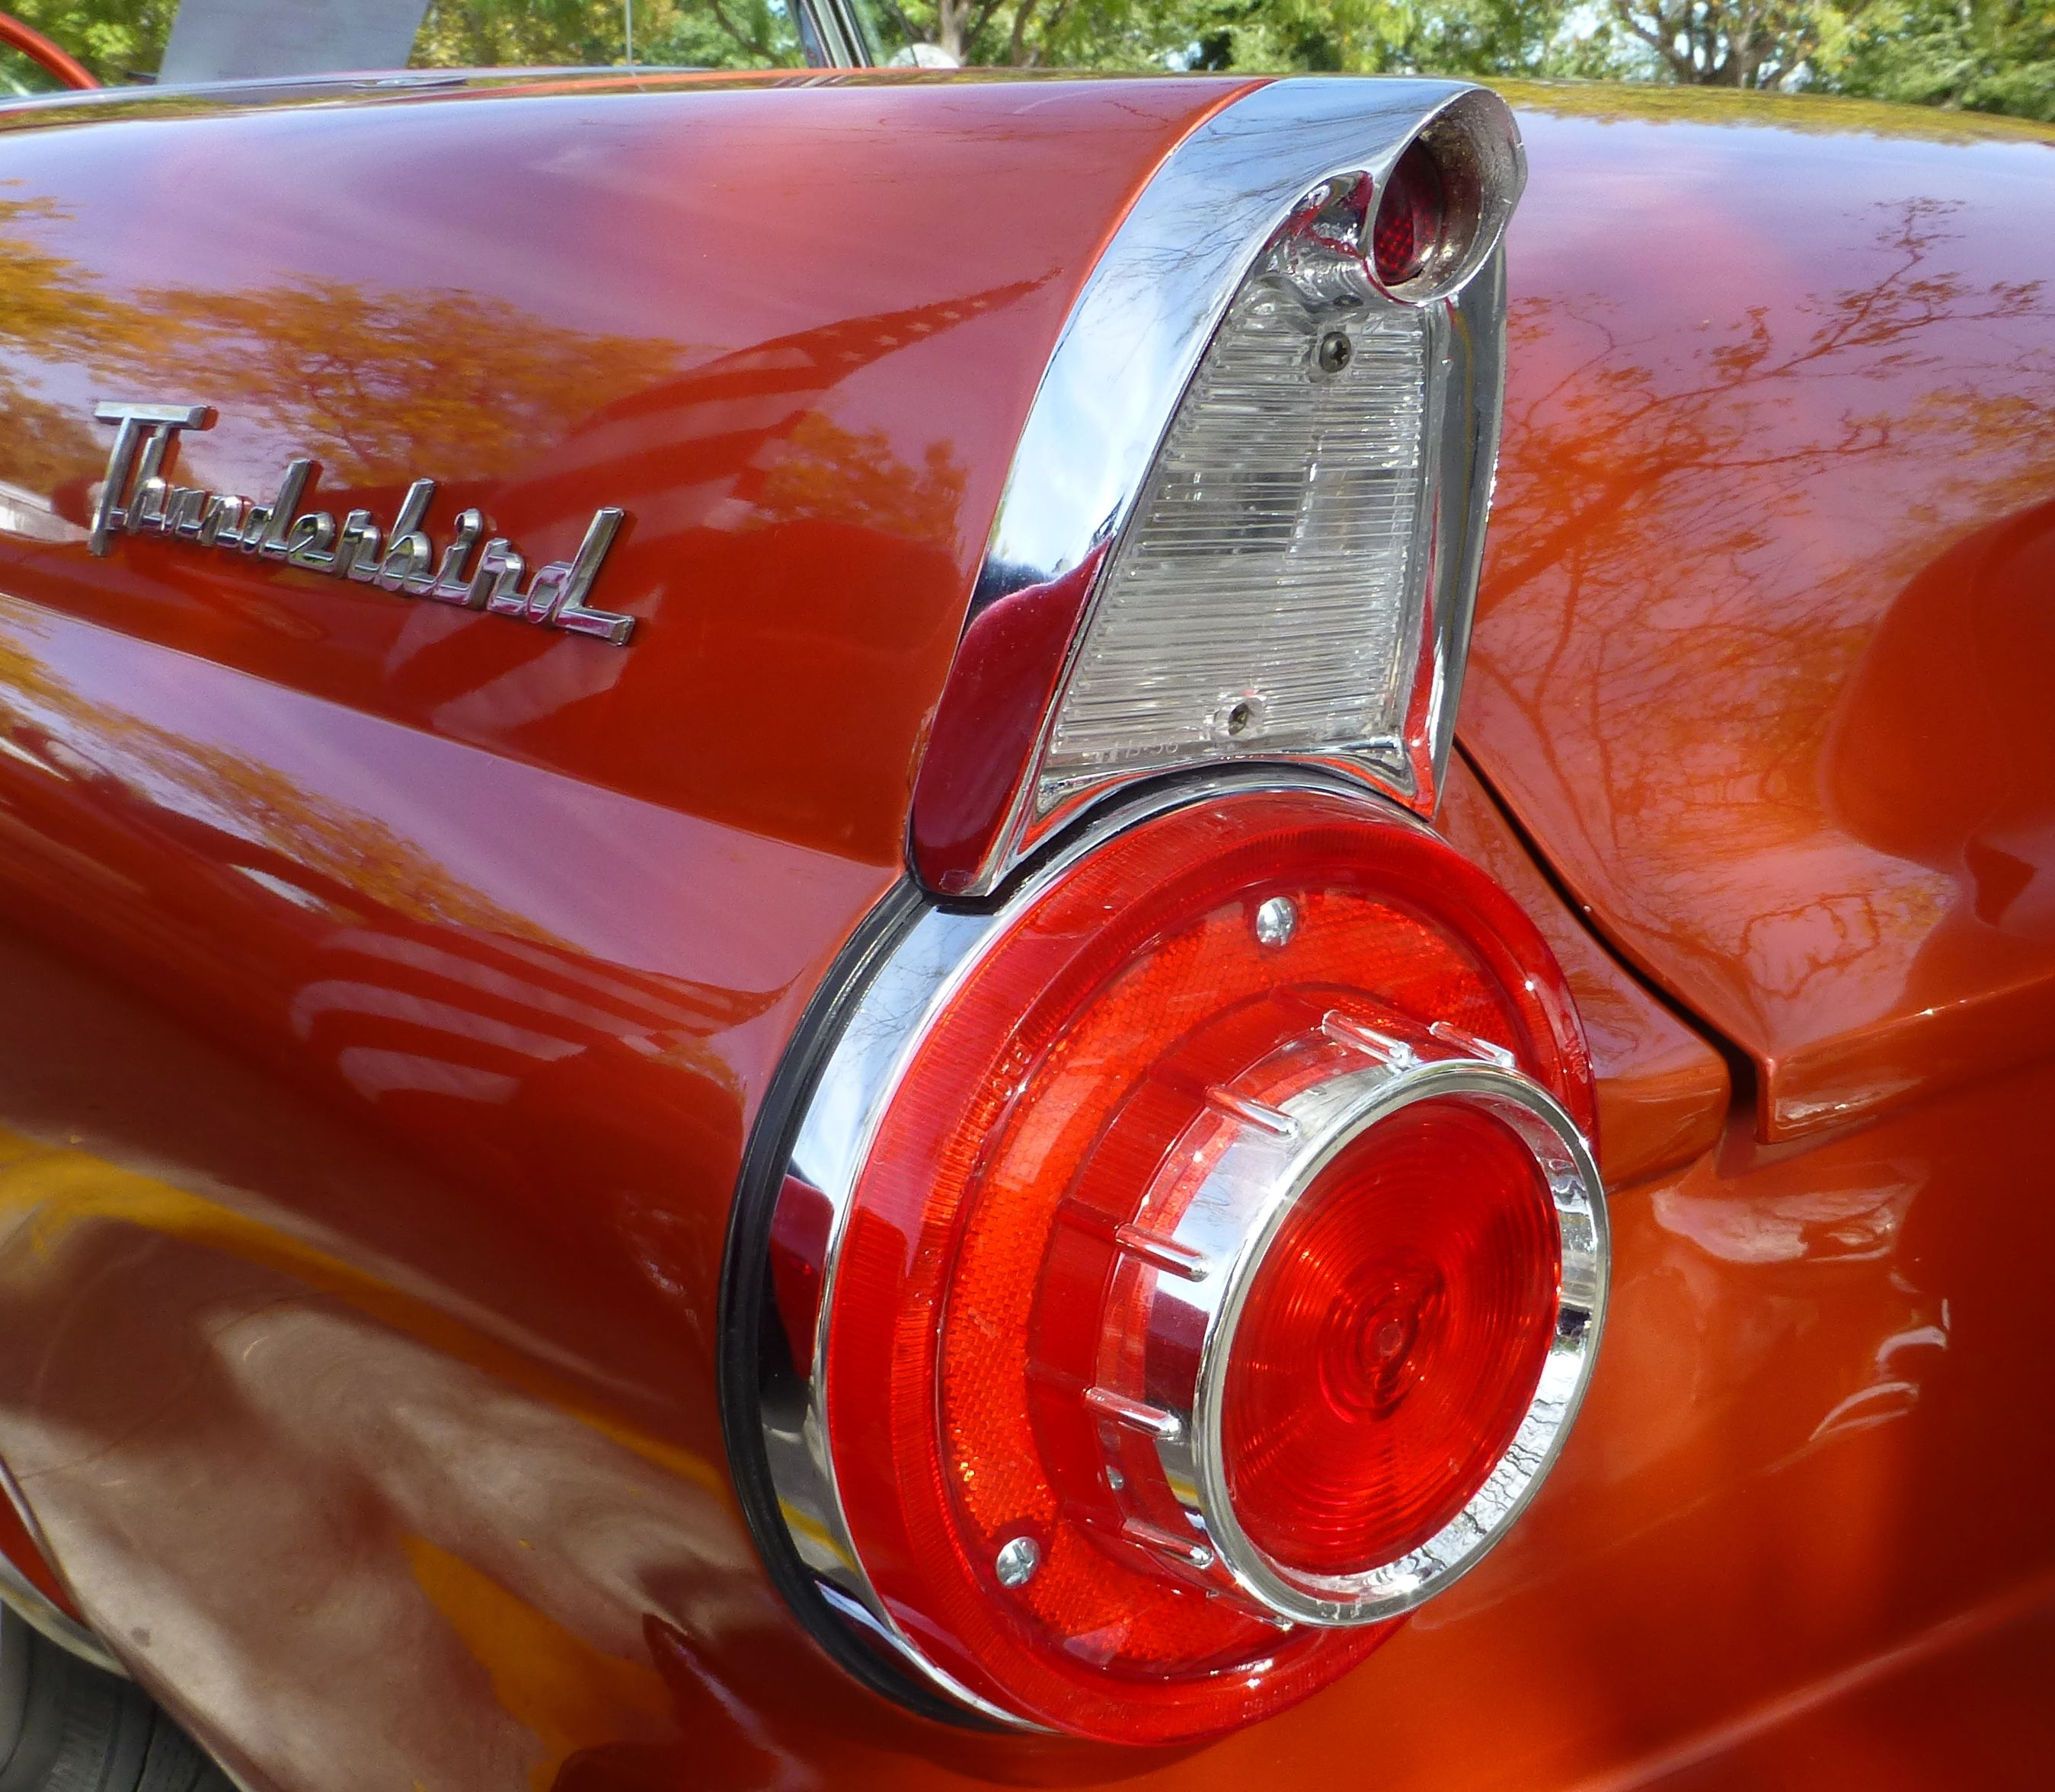 1956 Ford Thunderbird tail fin graphy by David E Nelson 2016